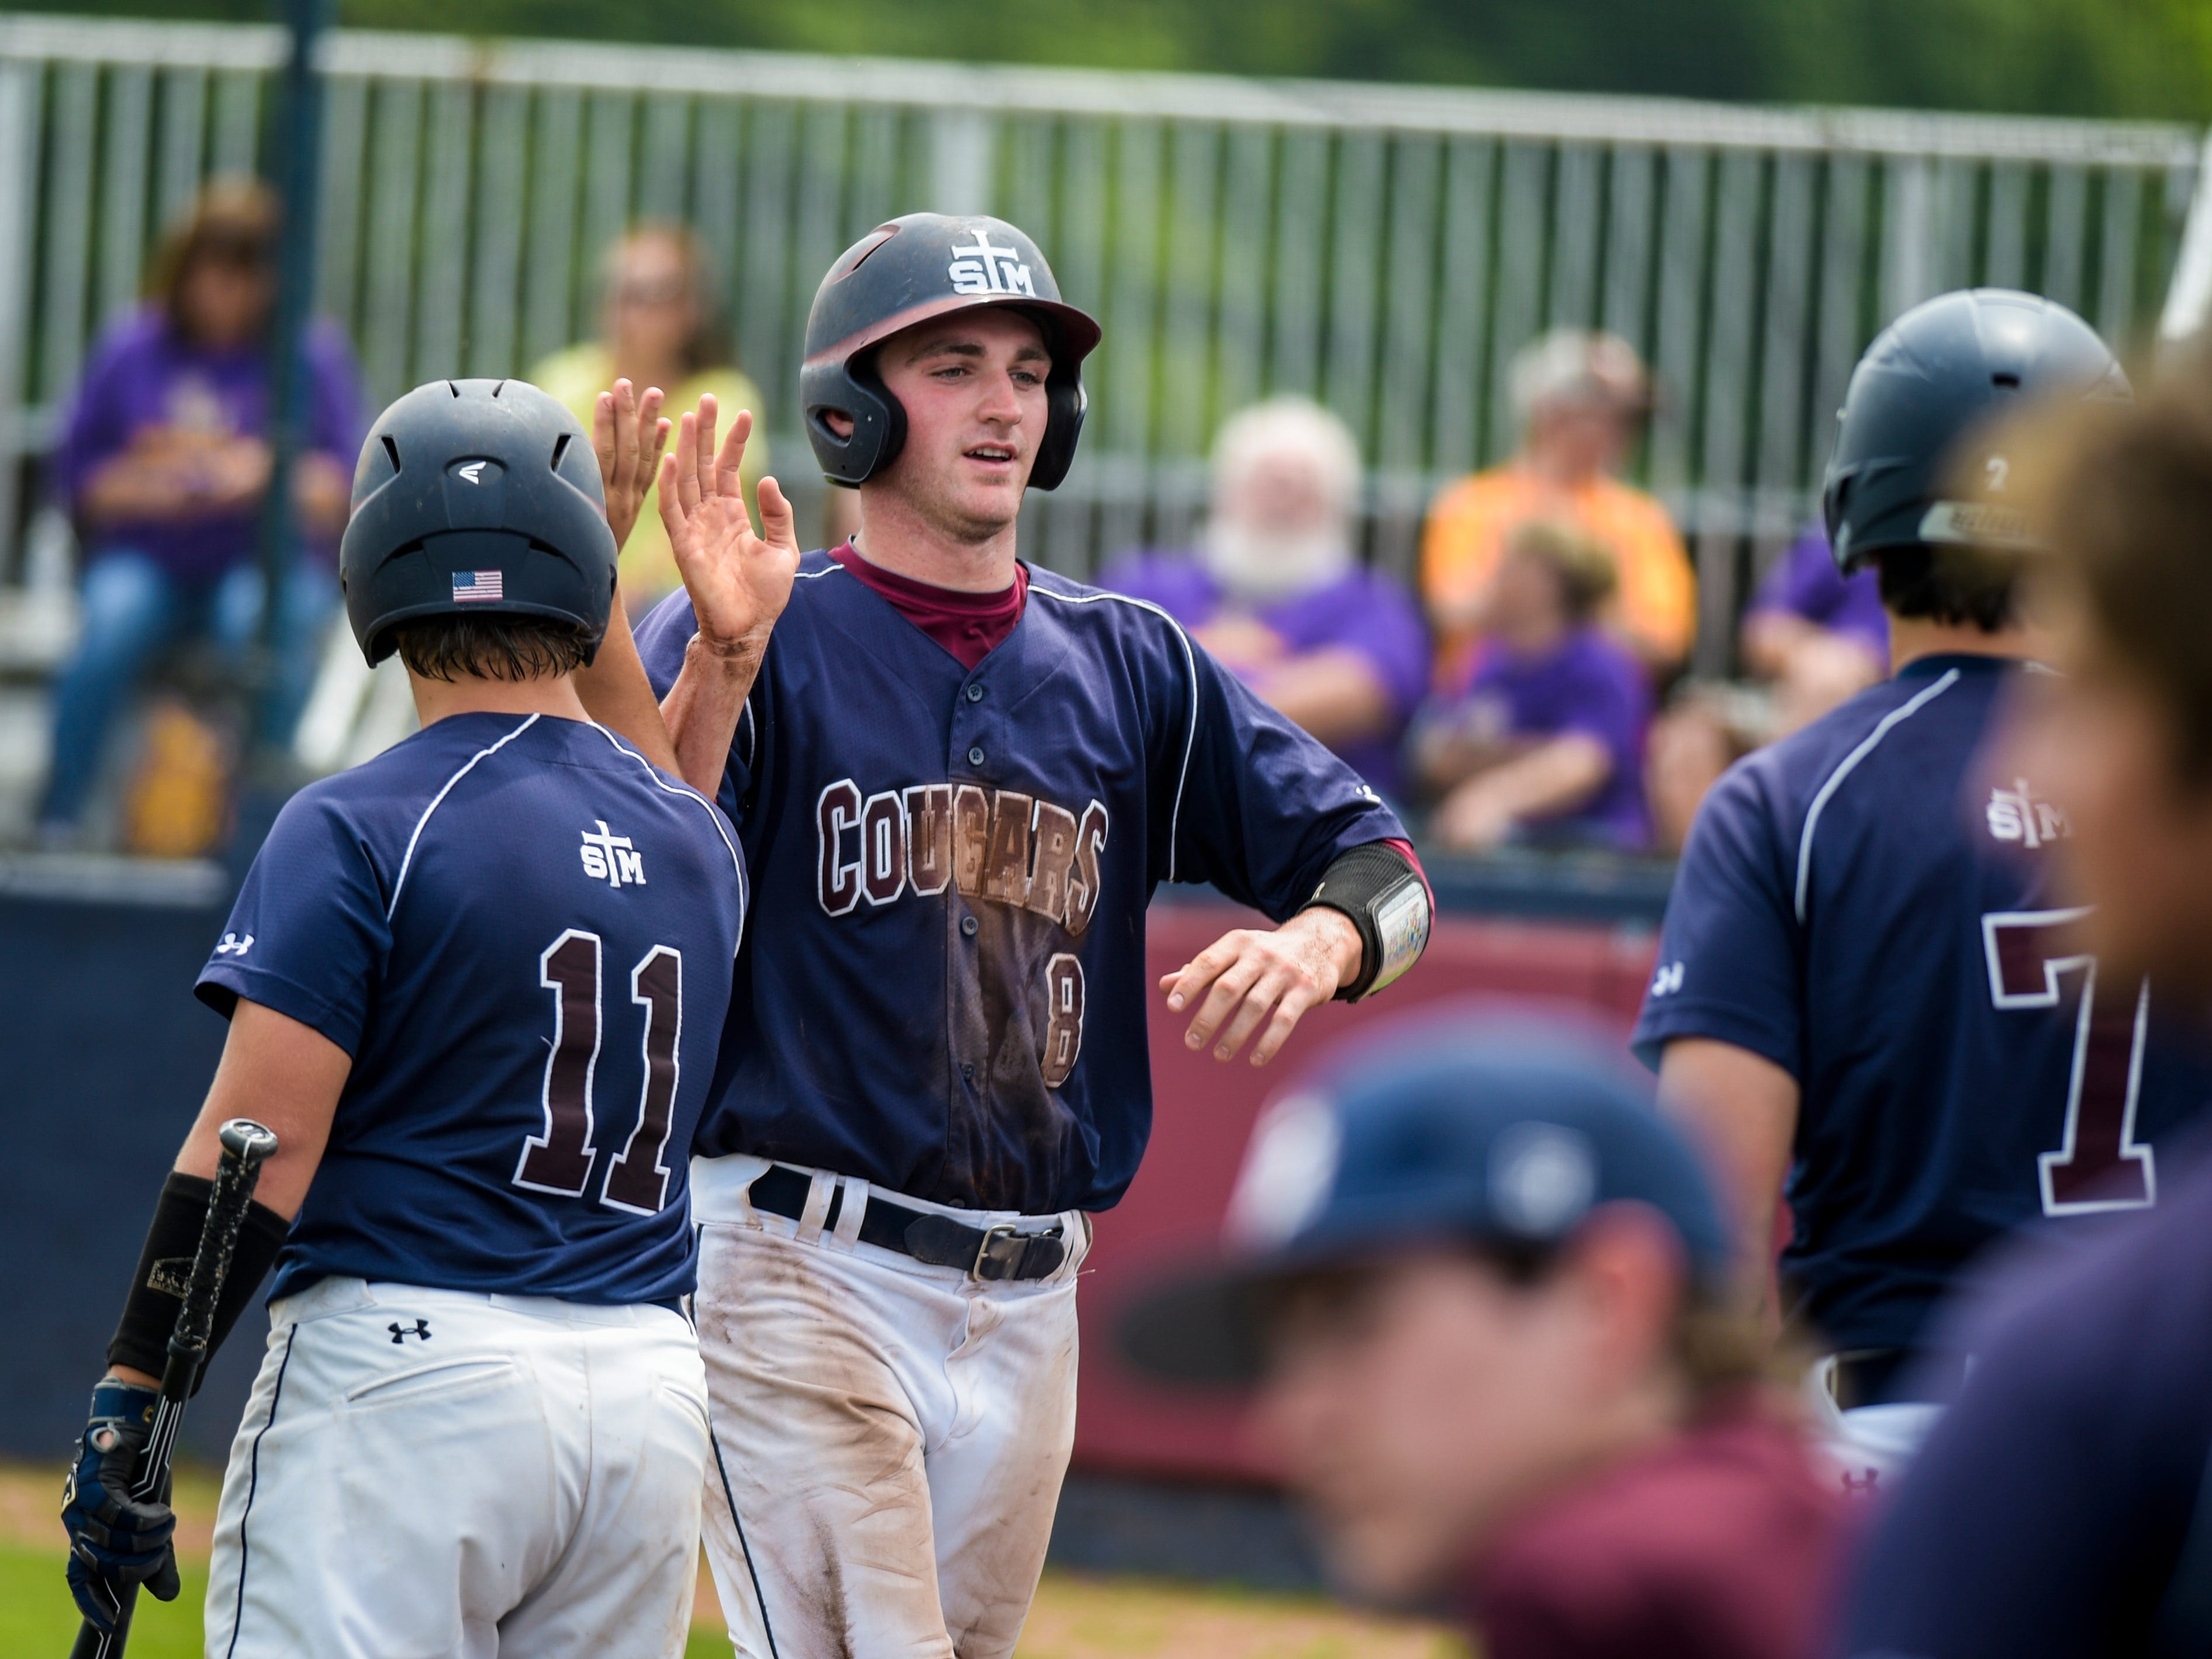 St. Thomas More shortstop O'Neal Lochridge (8), shown here celebrating a run earlier this season, got the game-winning RBI double in Saturday's 4-3 win over Teurlings in Sulphur.